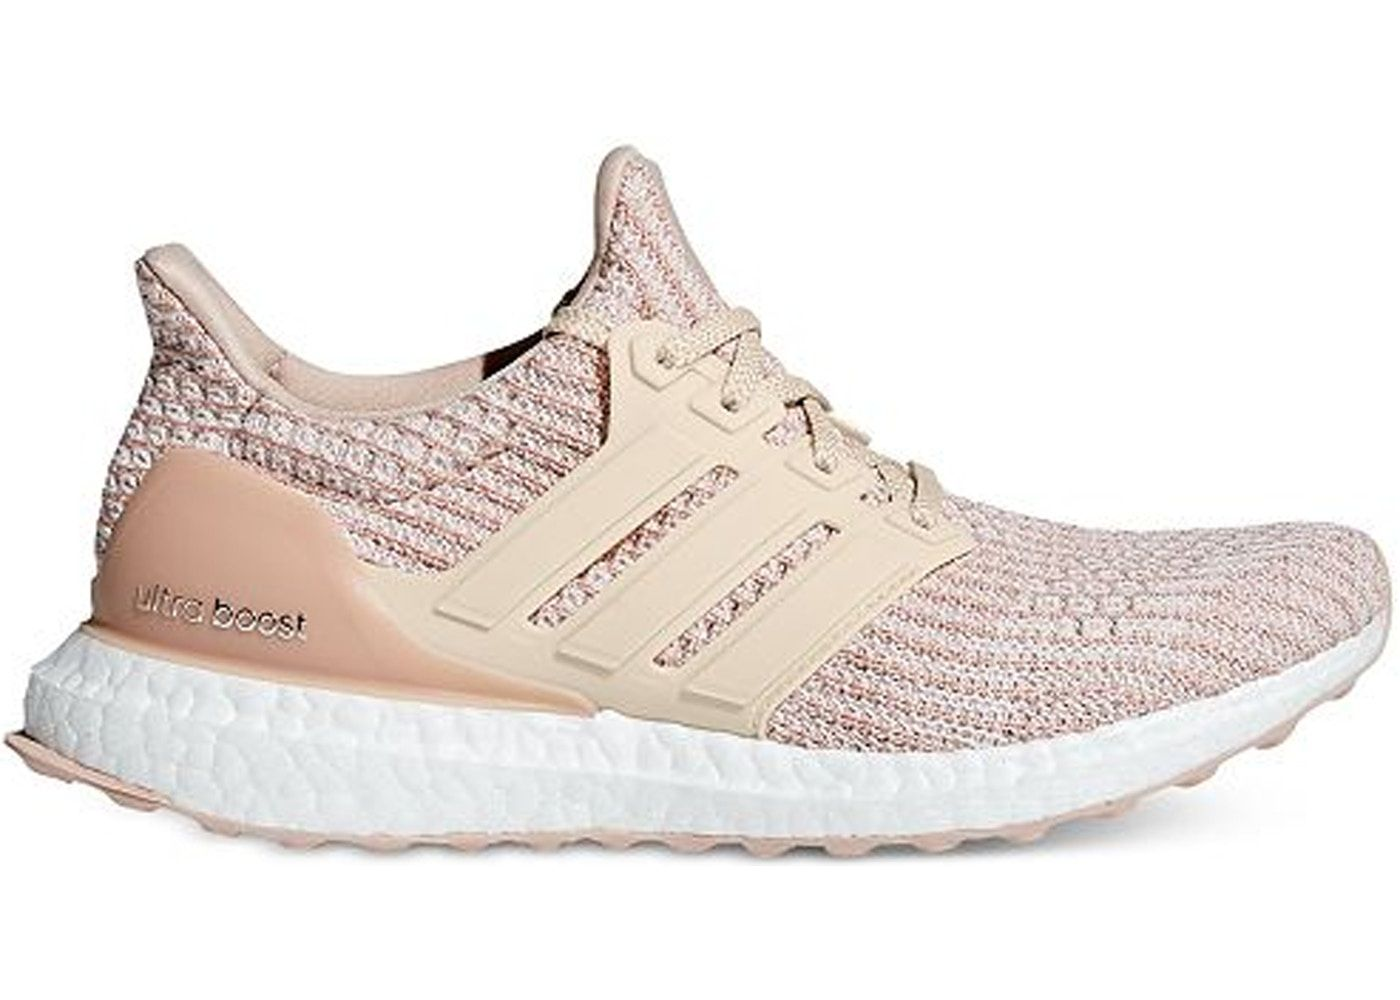 adidas Ultra Boost 4.0 Ash Pearl (W) in 2020 | Women shoes ...